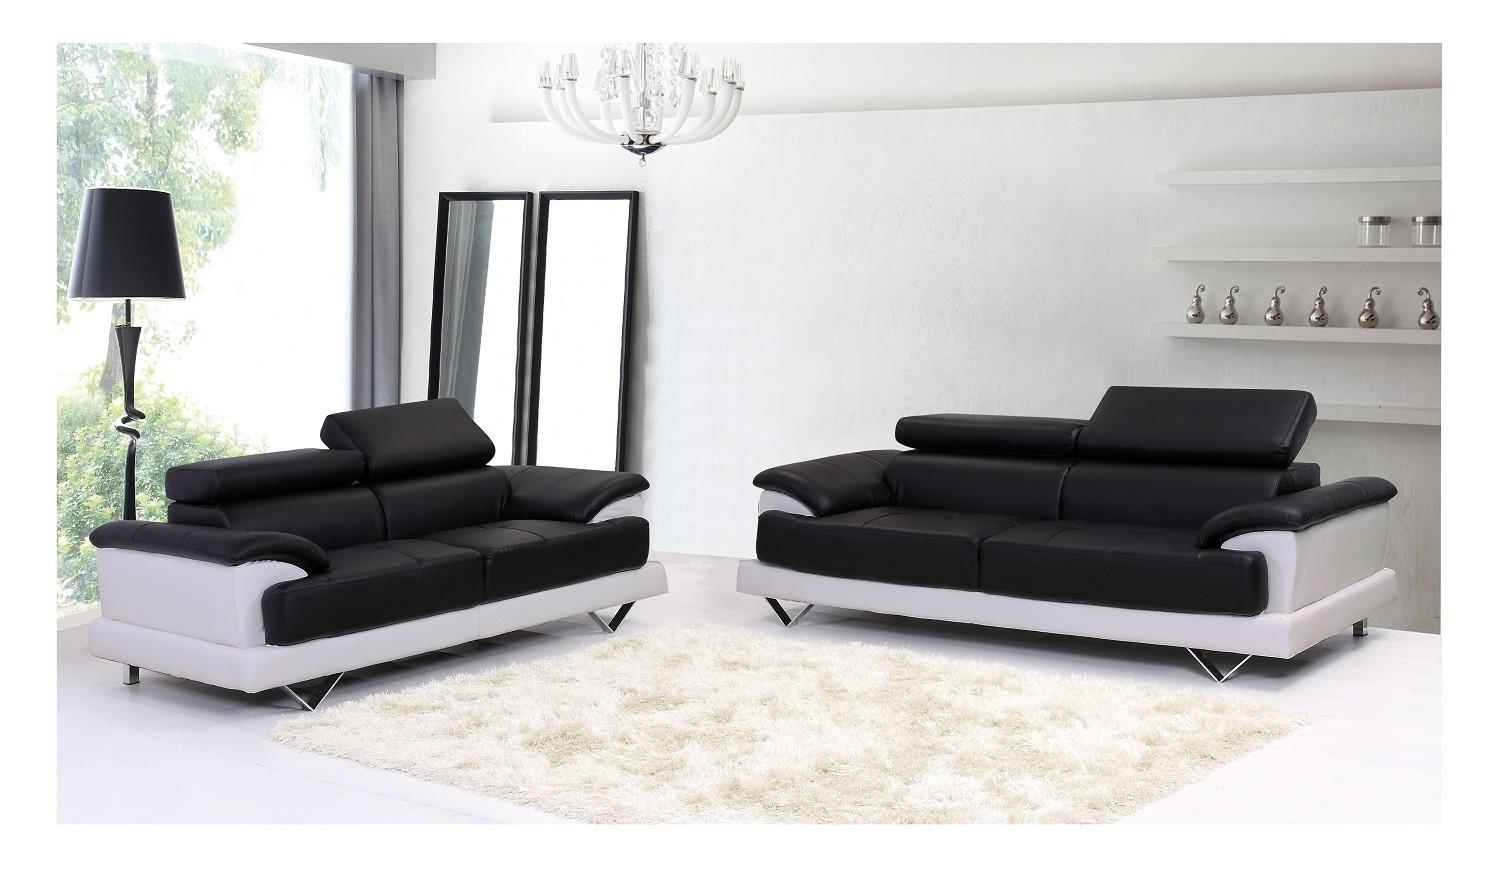 Sofas Center : Leather Sofa Black Modern Tufted Loveseat With Inside Contemporary Black Leather Sofas (View 15 of 20)